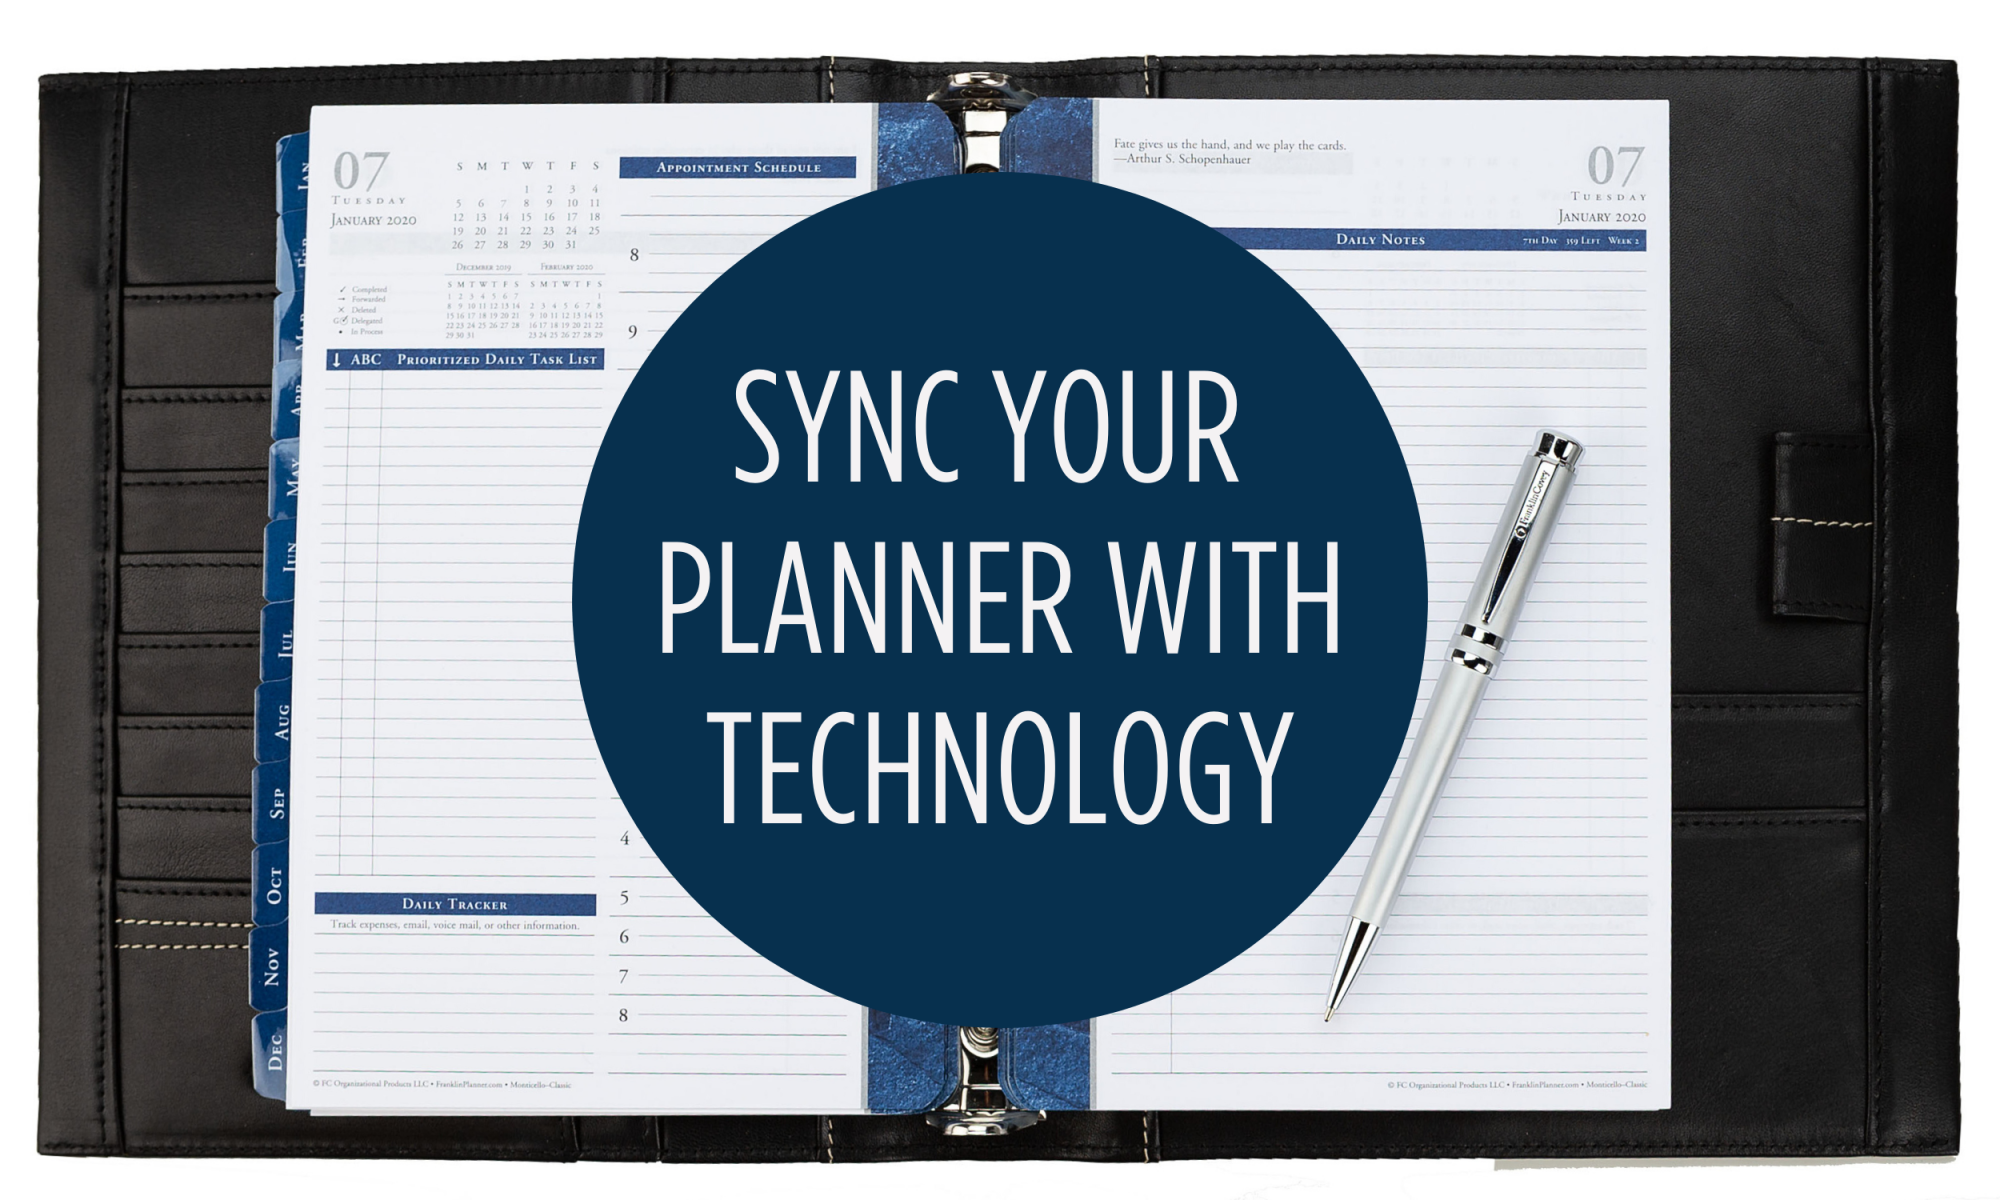 Sync your planner with technology